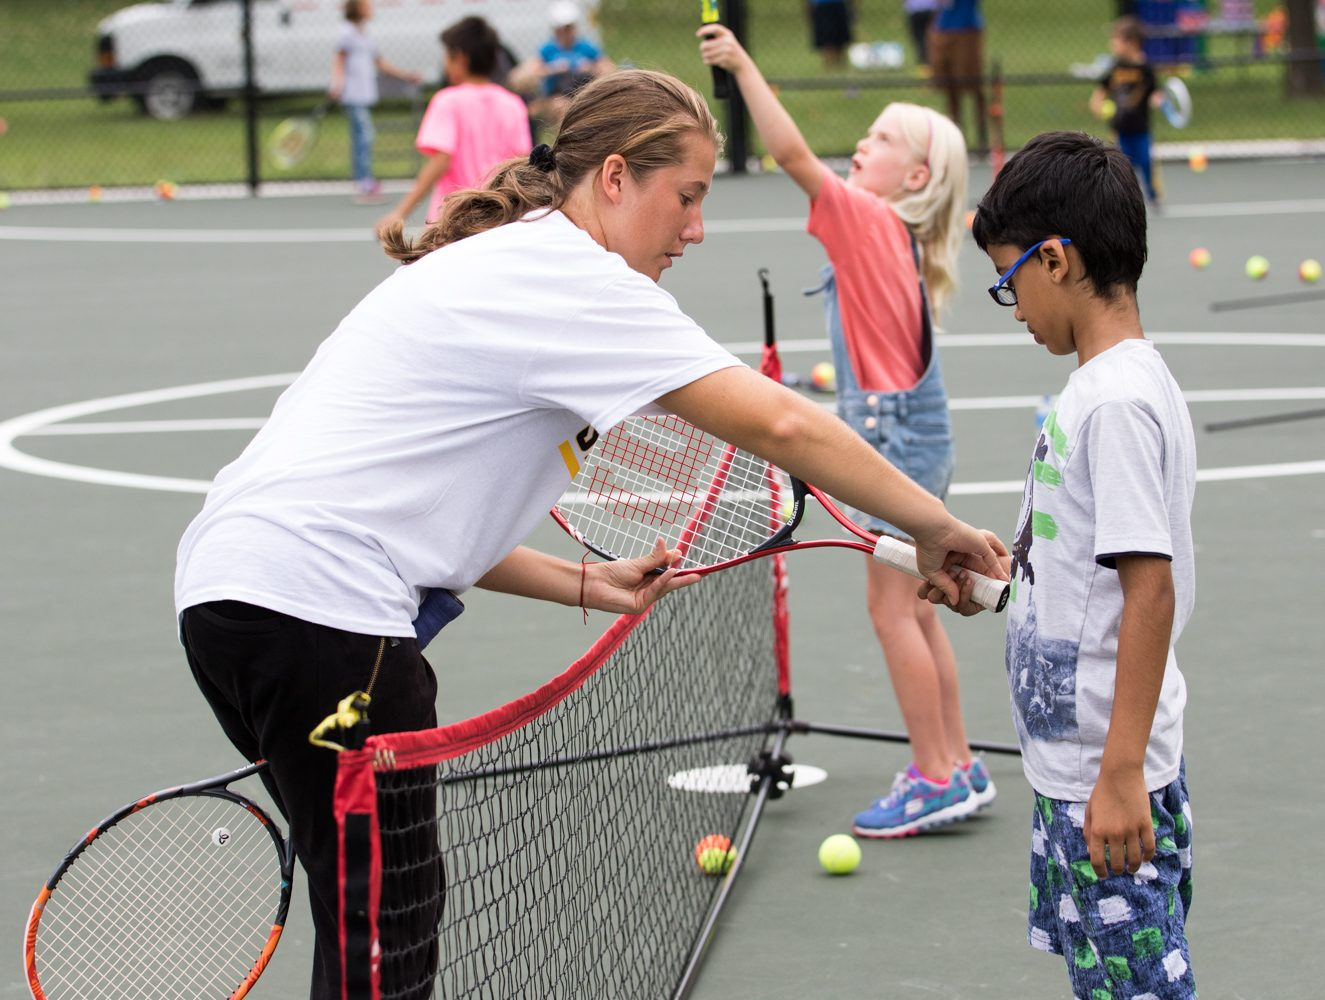 Alexandra Lazarova shows a youth at the clinic how to hold the tennis racket.